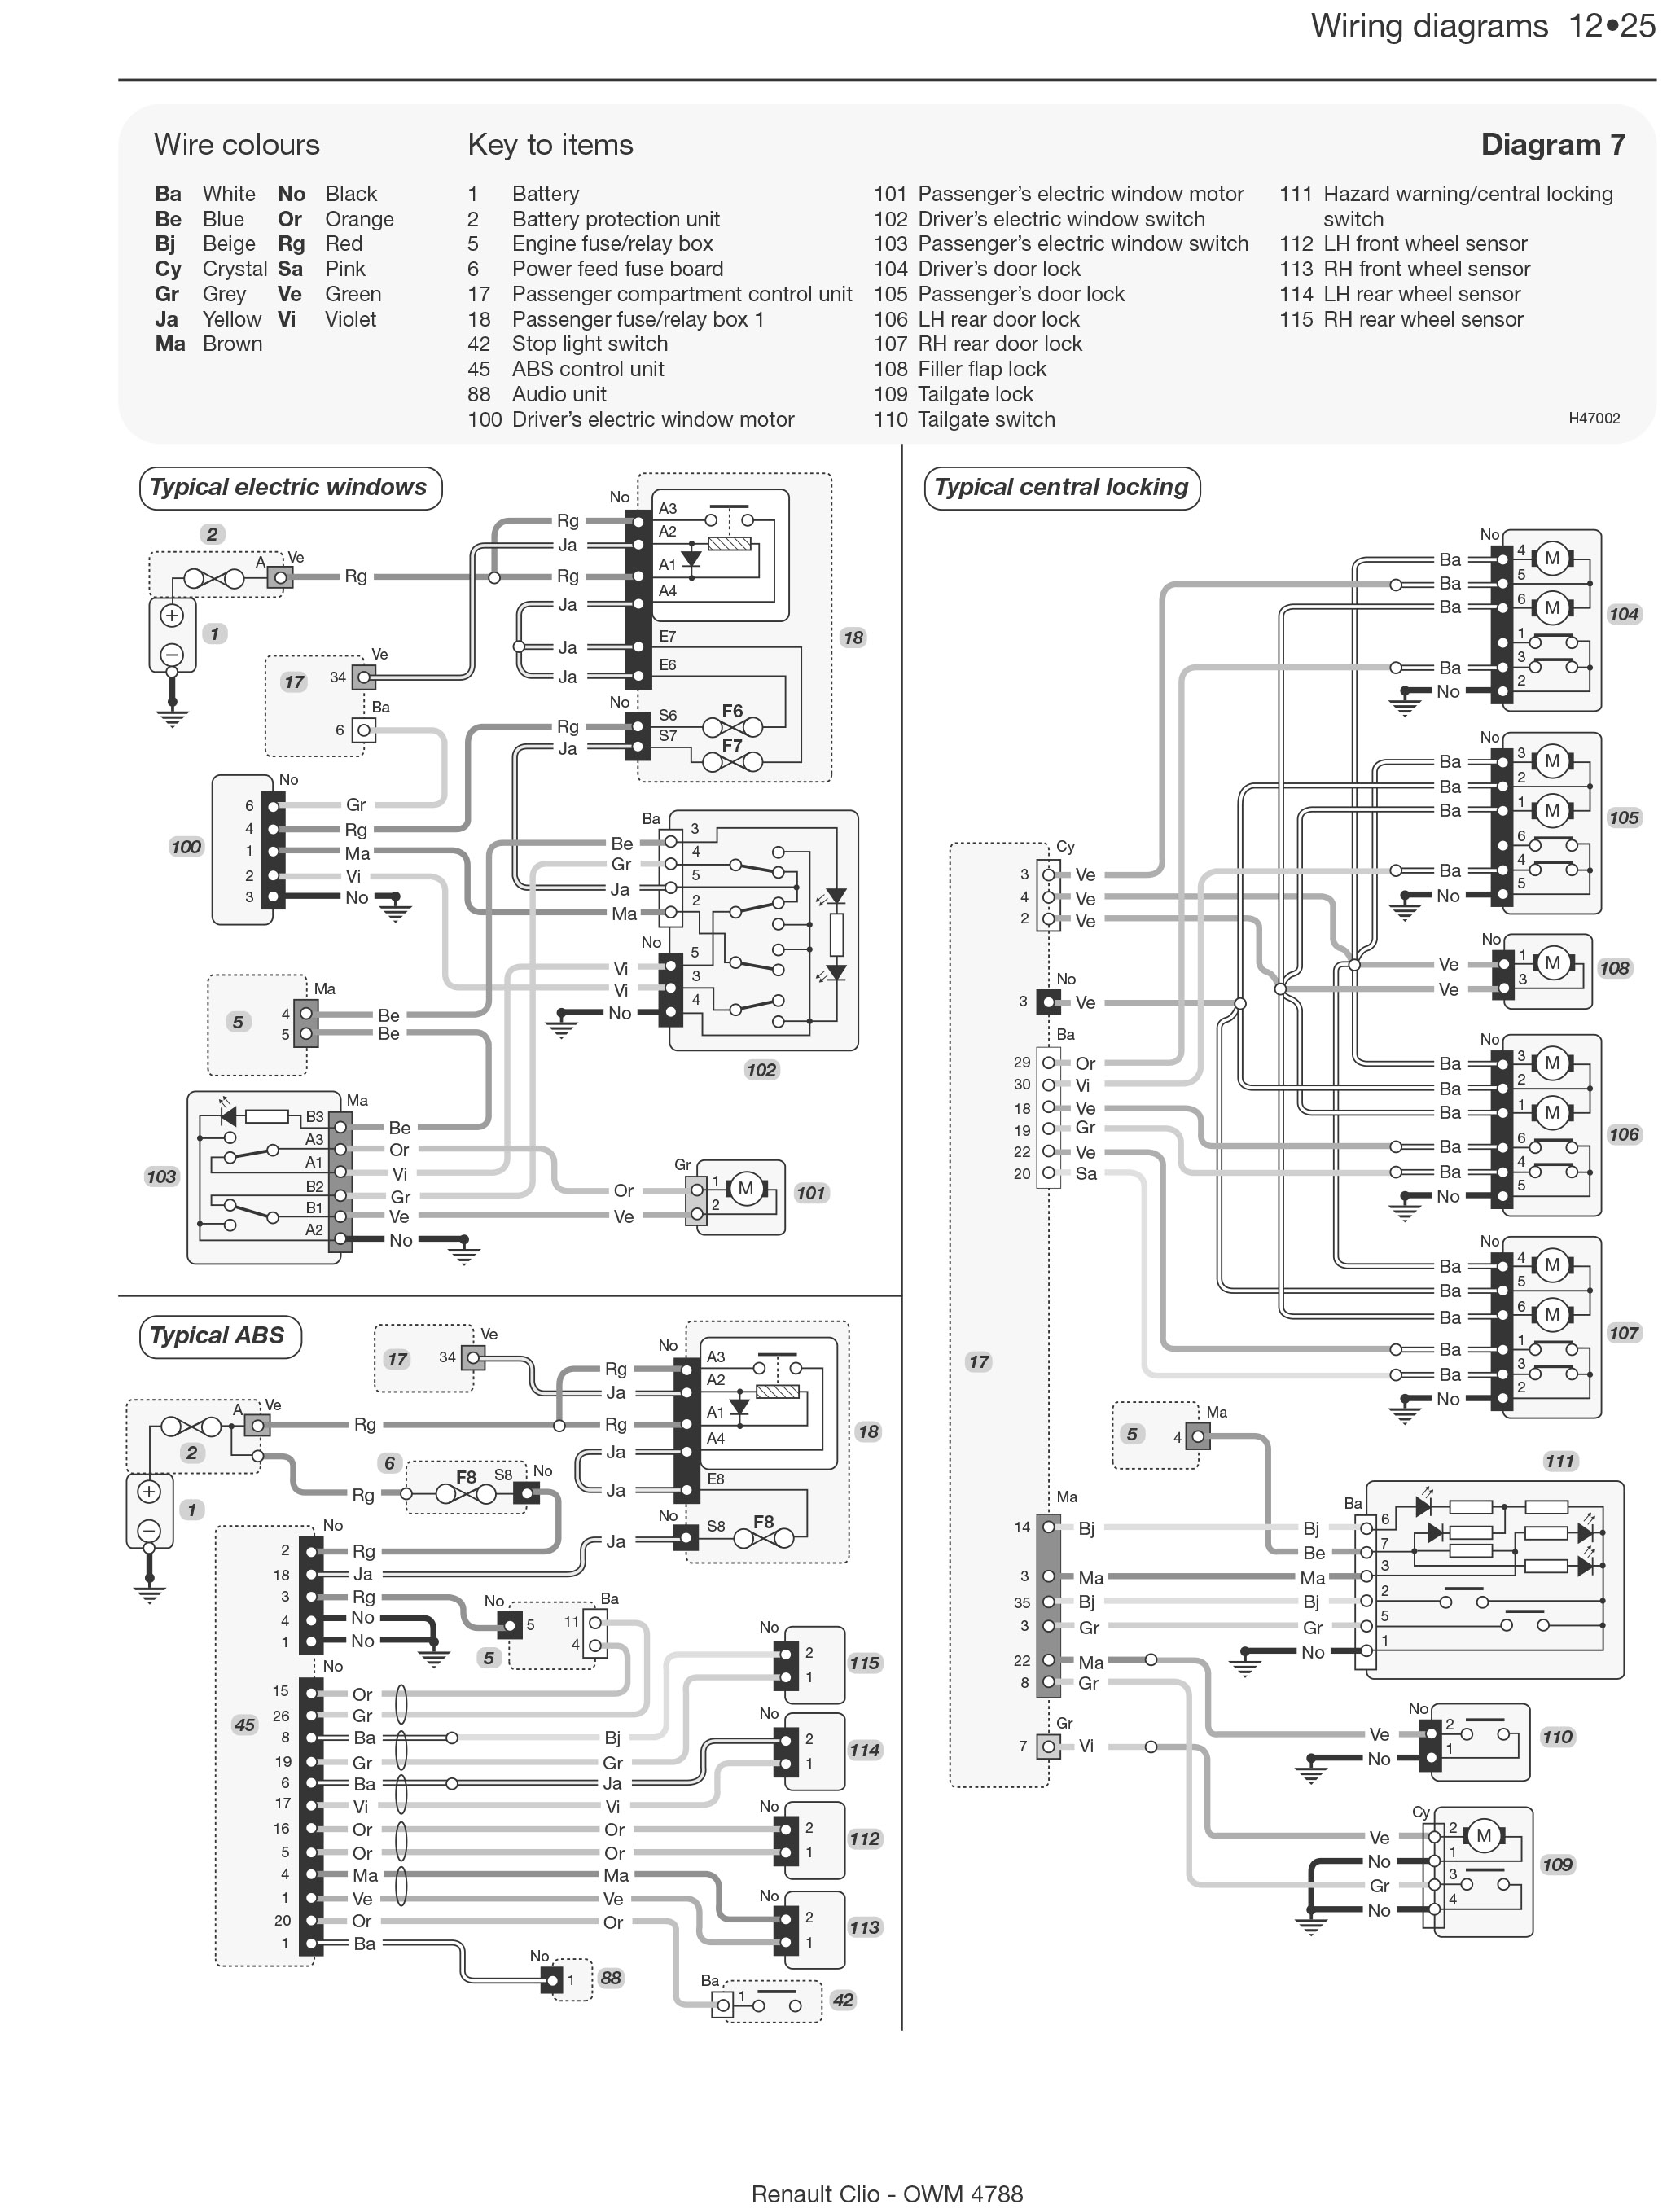 Renault Clio Speaker Wiring Diagram : Renault clio wiring diagram manual